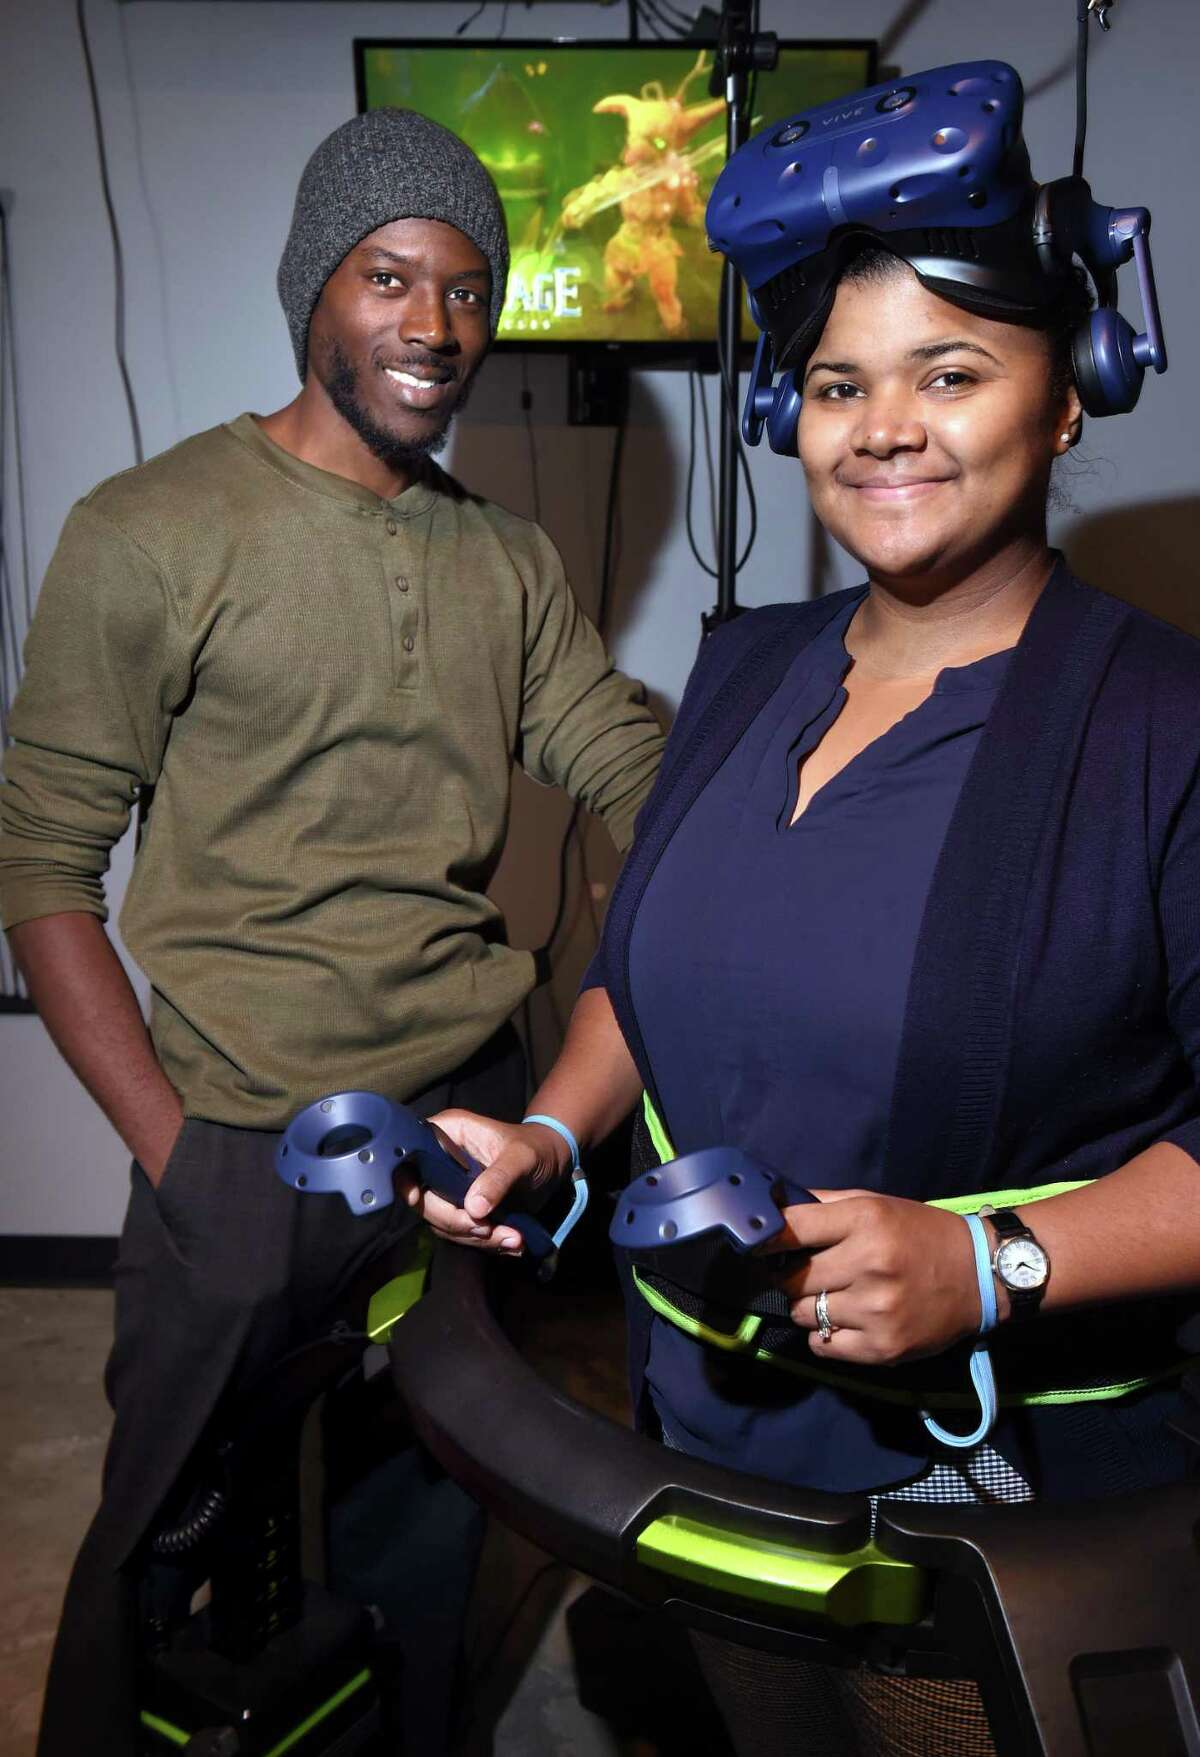 Joseph Champagne, left, and Marileydi Dorival of The Spot VR Lounge are photographed by one of two Virtuix Omni omnidirectional treadmill simulators at the lounge in Orange. Not pictured is Marileydi's husband, co-owner Darison Dorival.